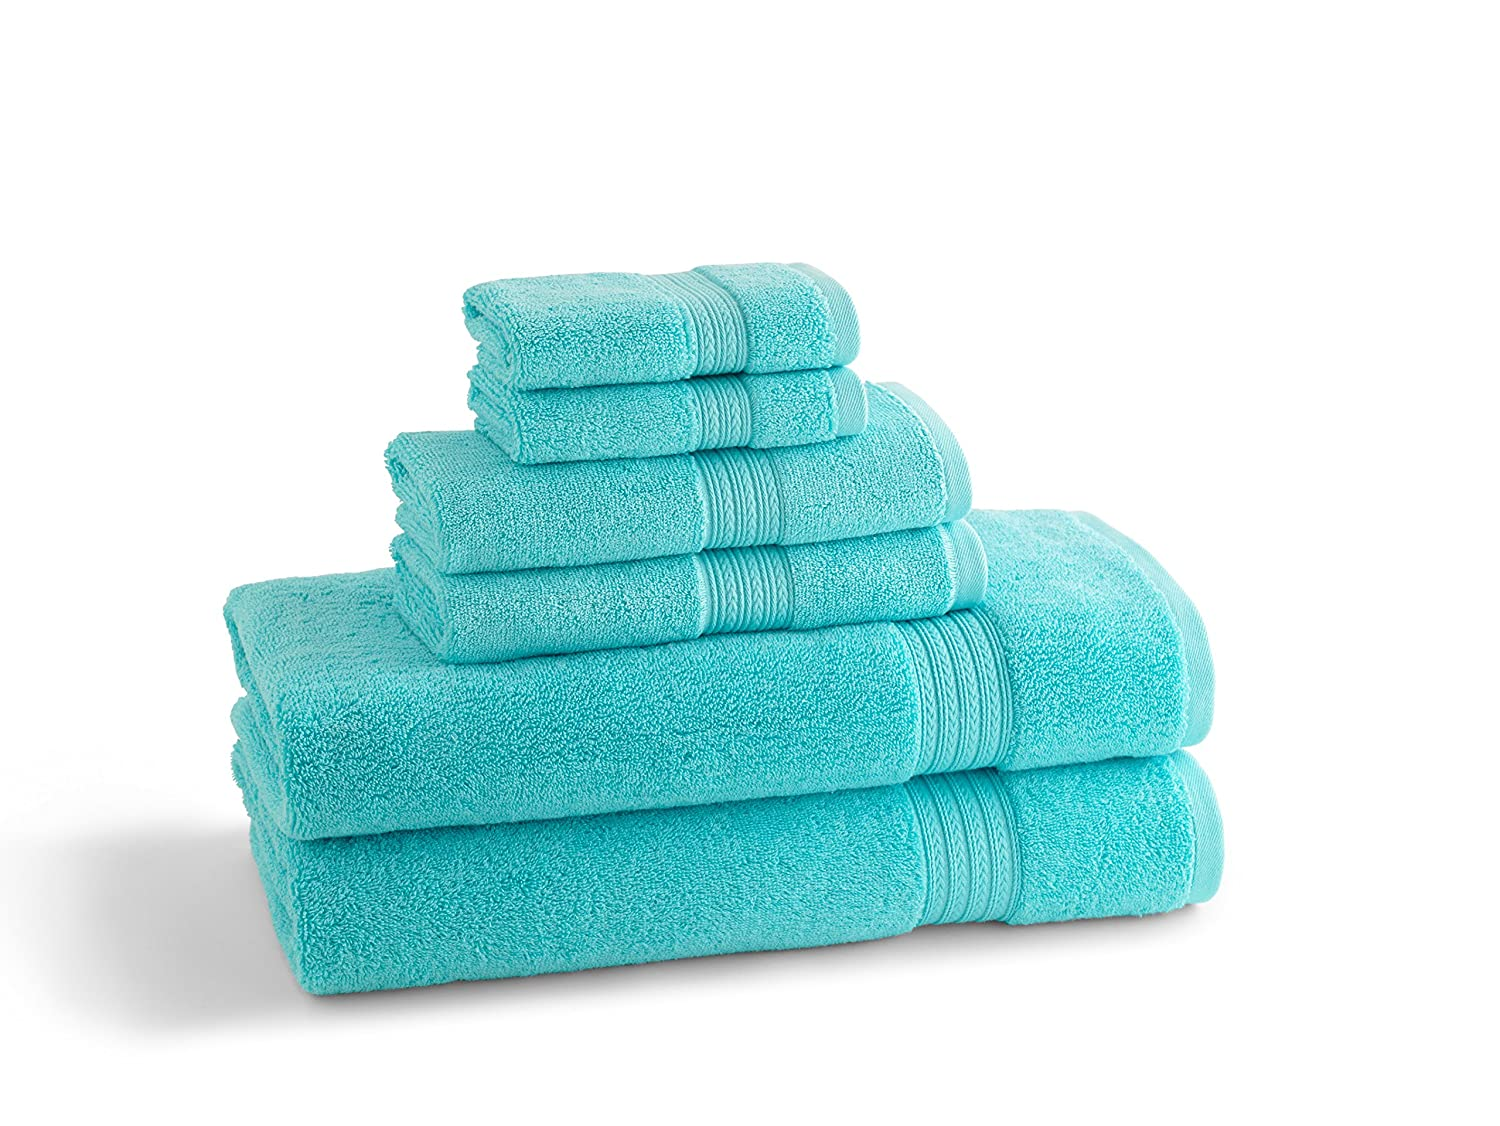 Kassatex Kassadesign Brights Collection Bath Towel, Caribbean Blue полотенце для рук kassatex napa petrol blue nap 110 ptb 1266642